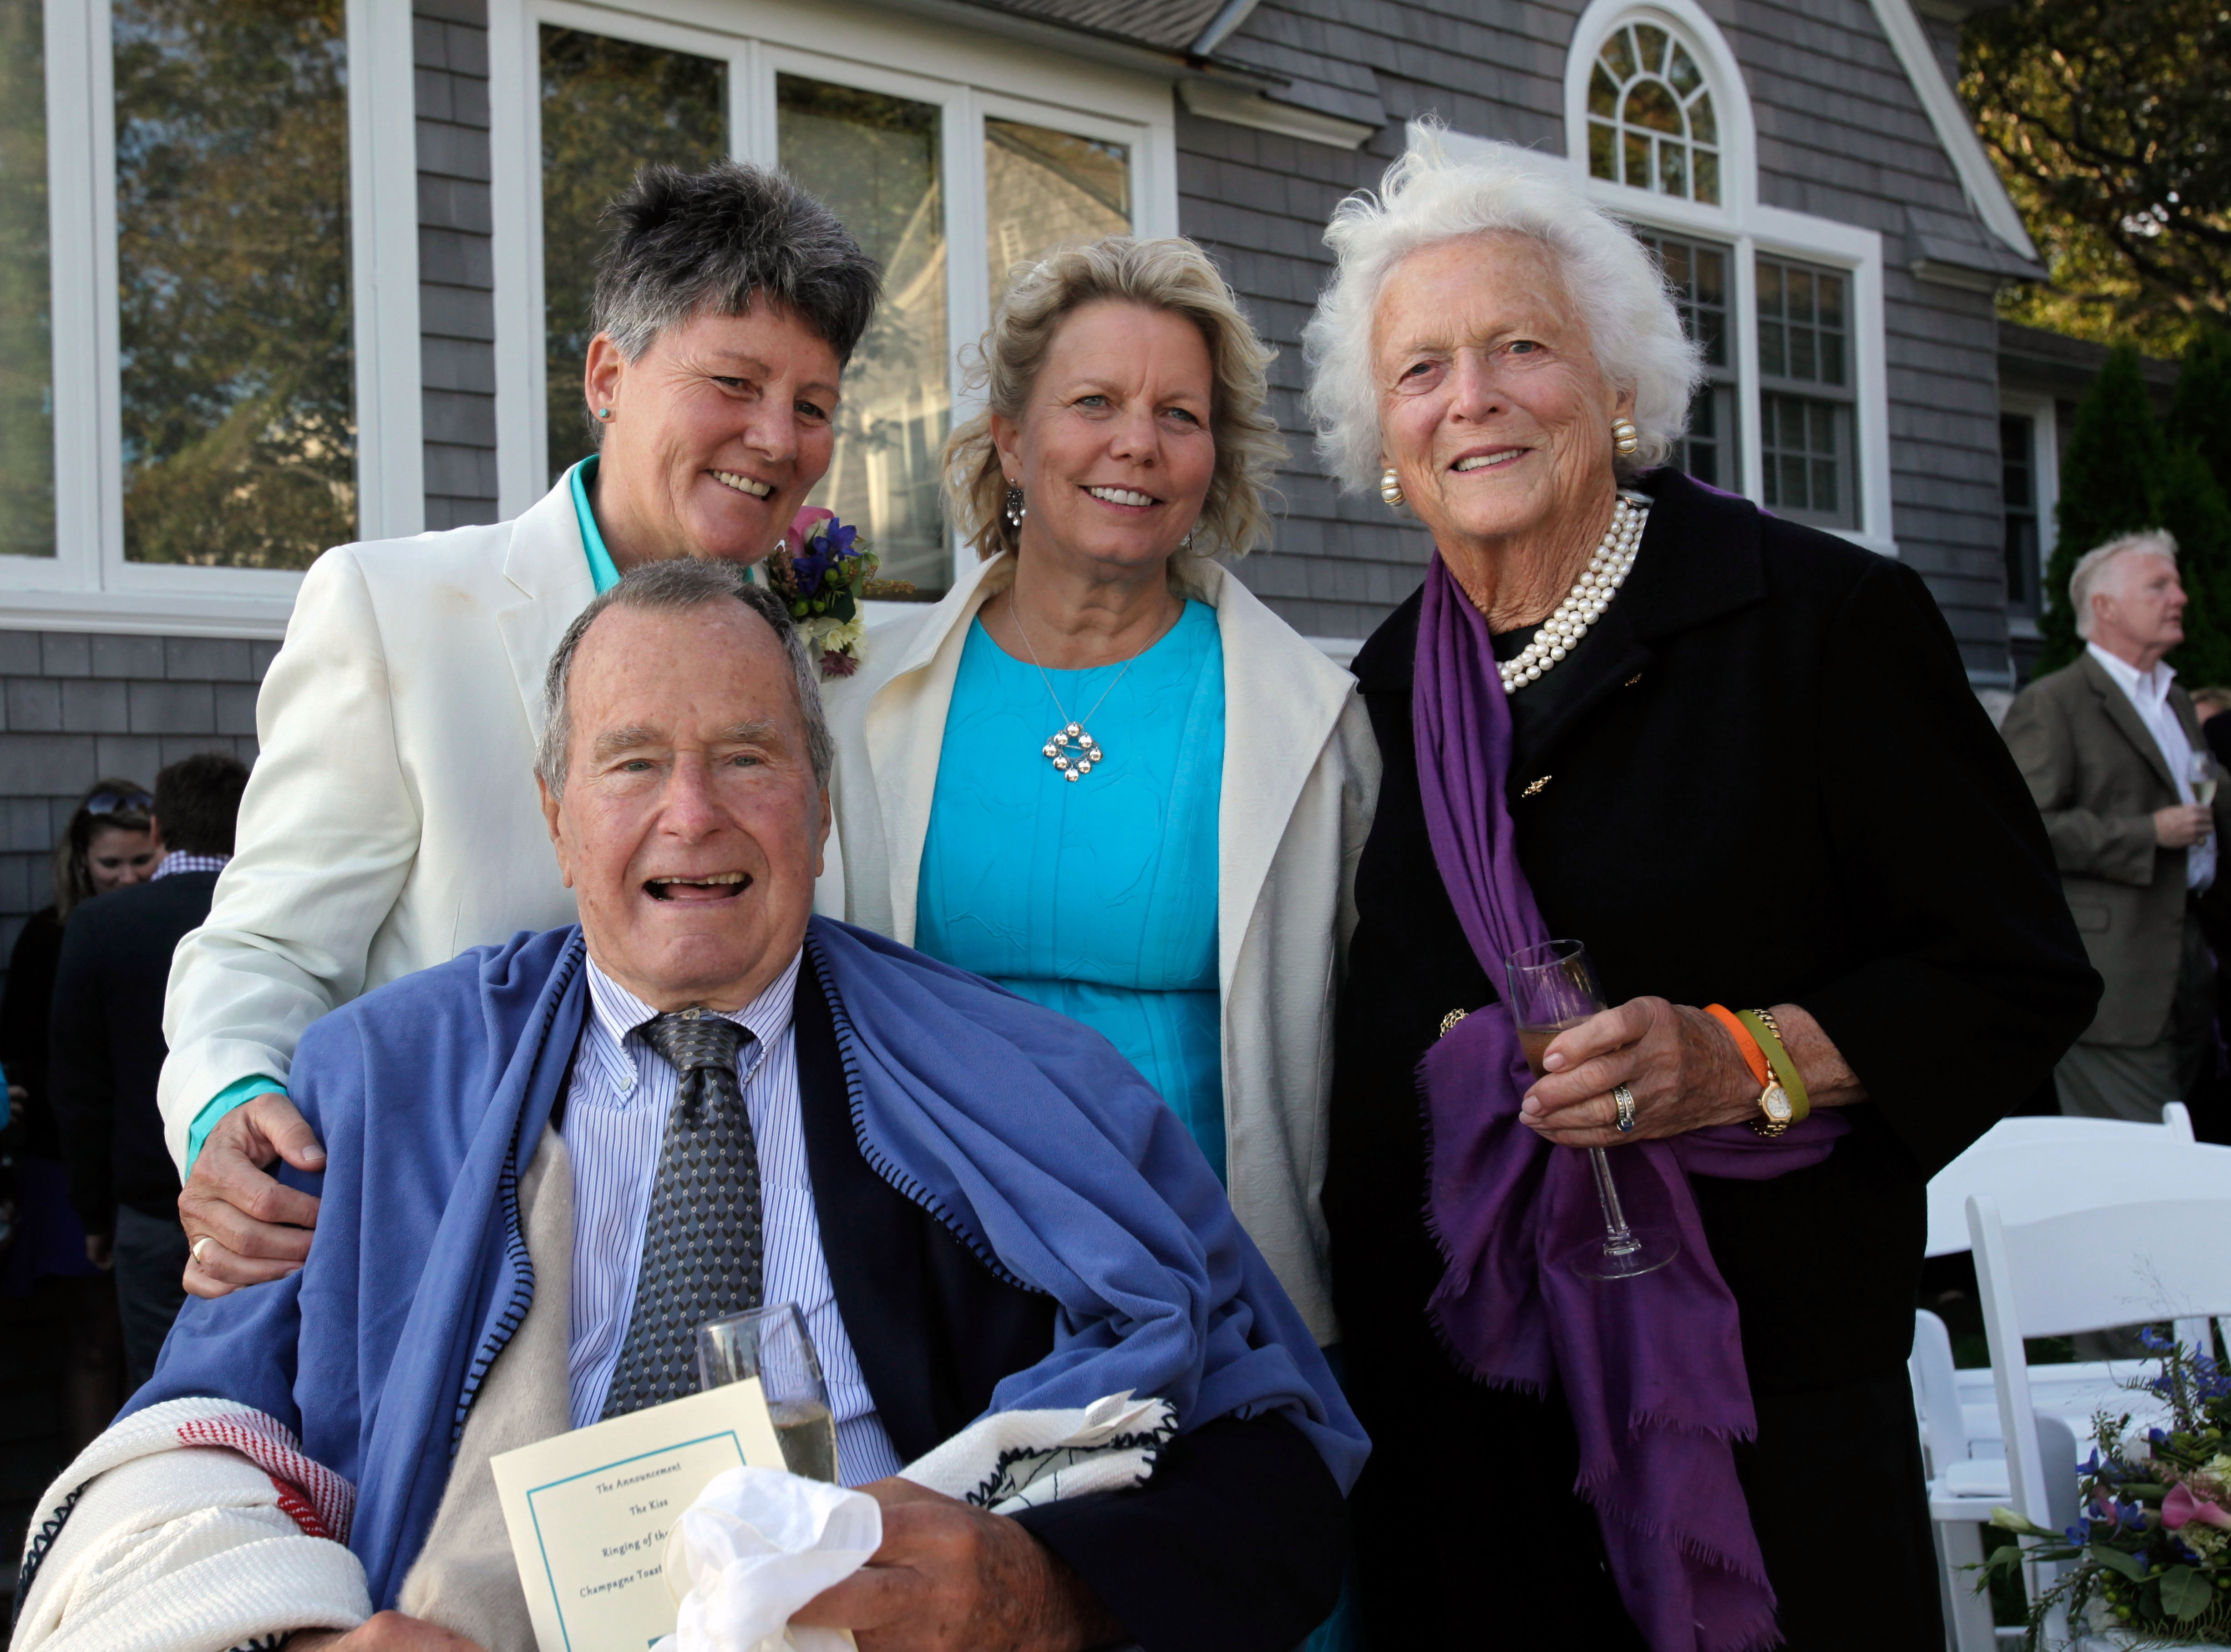 Former President George H.W. Bush and former first lady Barbara Bush pose with the happy couple, longtime friends Helen Thorgalsen, center, and Bonnie Clement.